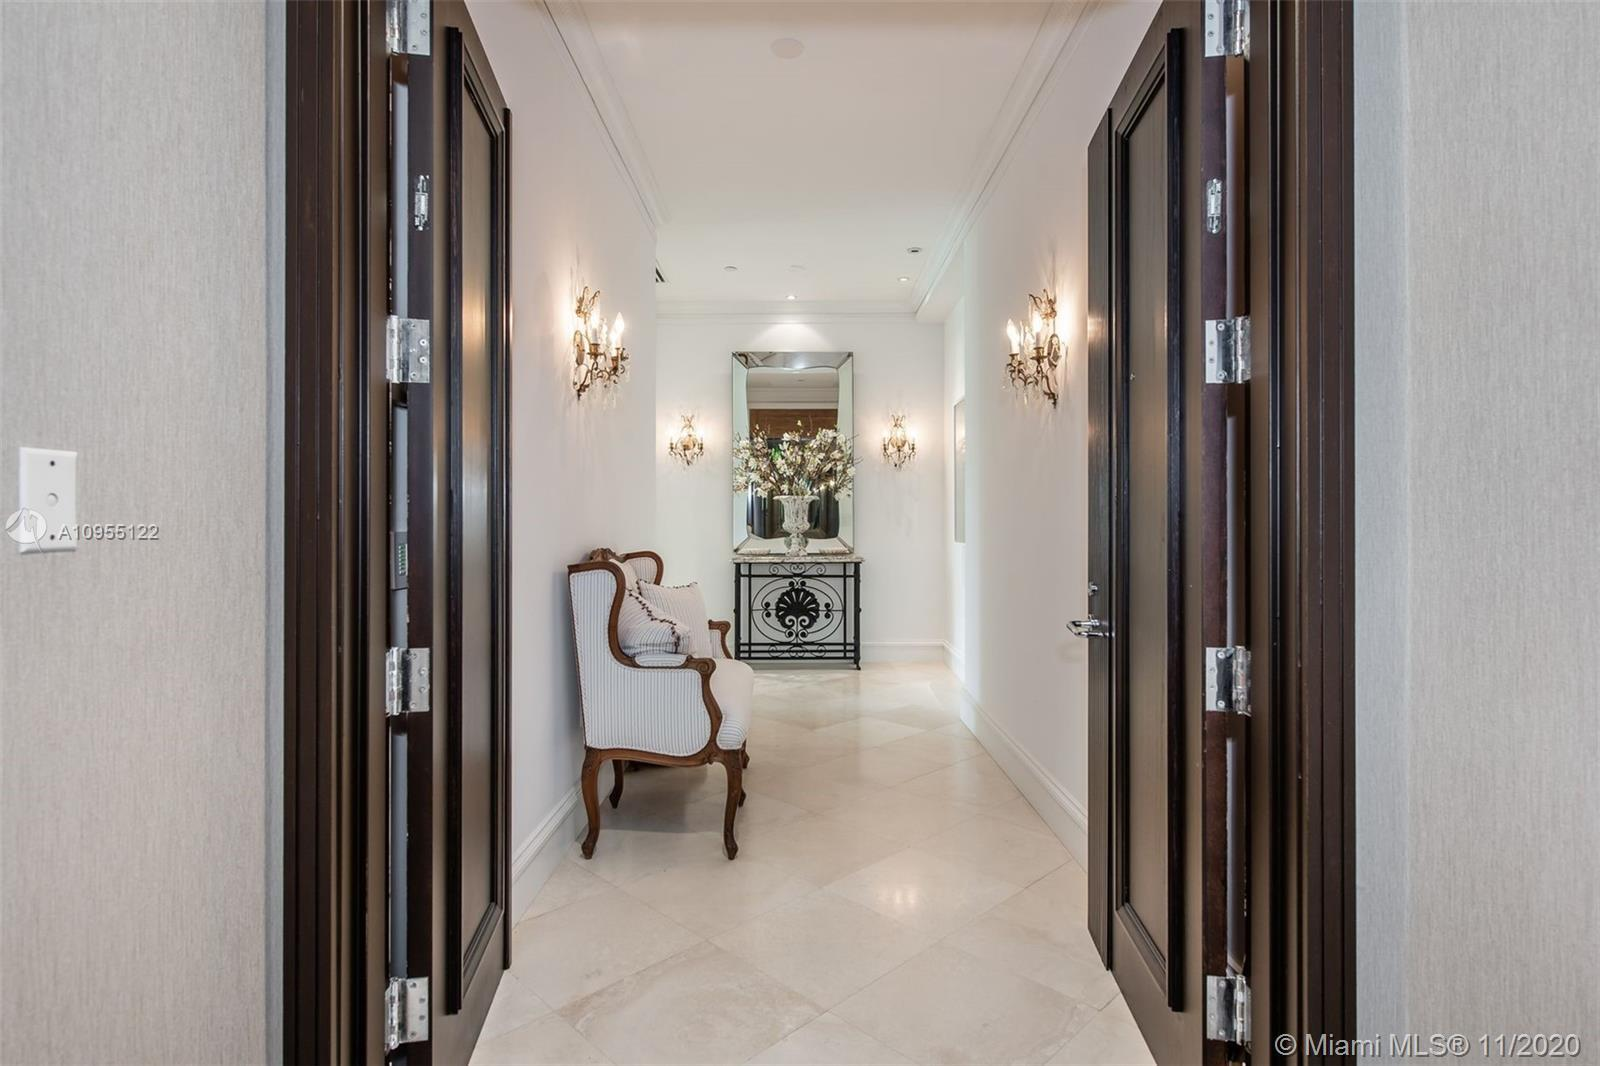 Parisian-style waterfront villa on gated Oceania island accross from the ocean. This spectacular res